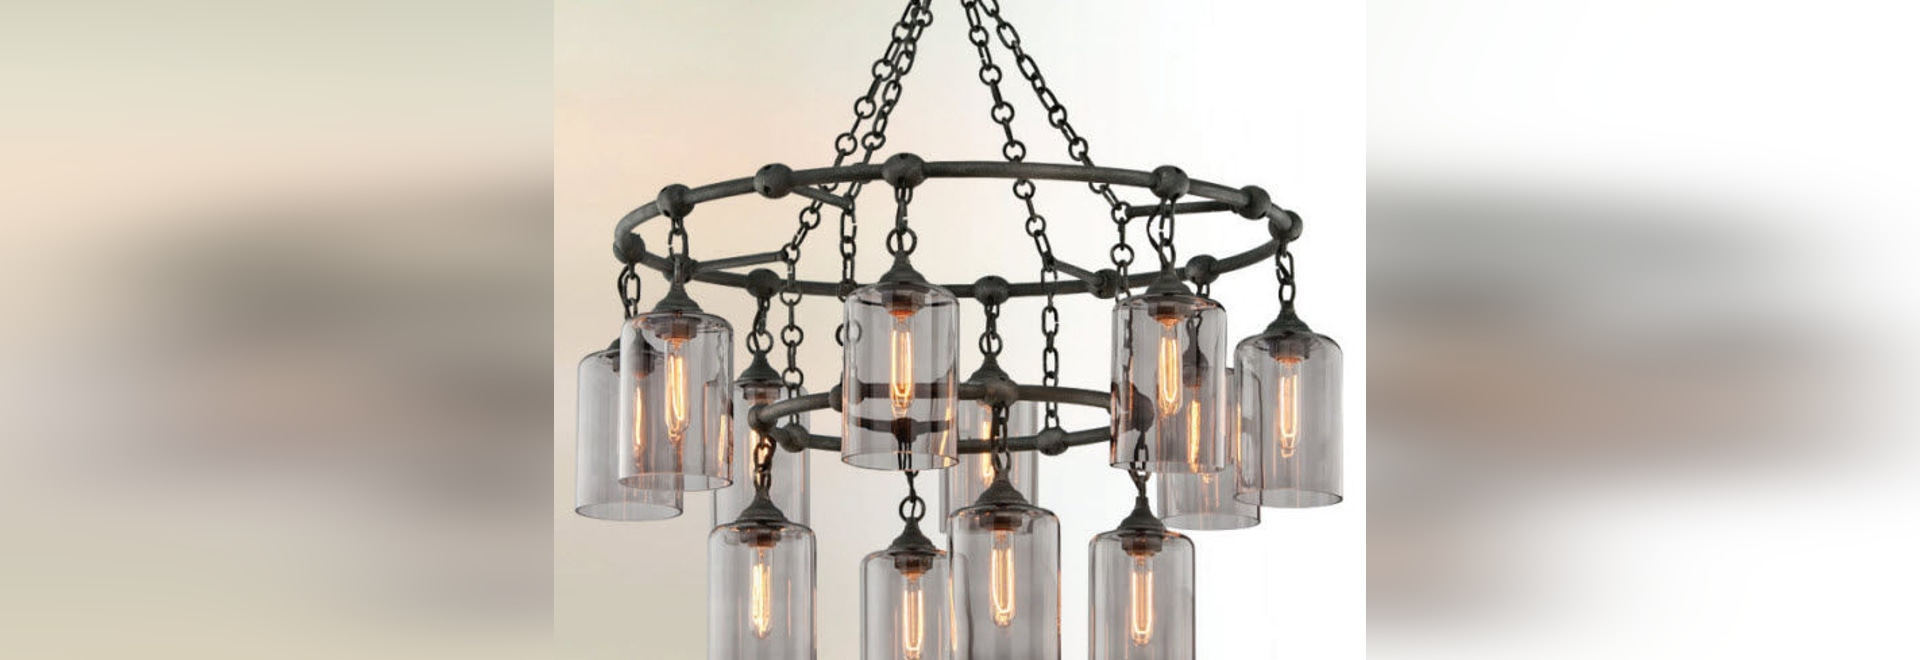 New traditional chandelier by troy lighting troy lighting new traditional chandelier by troy lighting arubaitofo Image collections